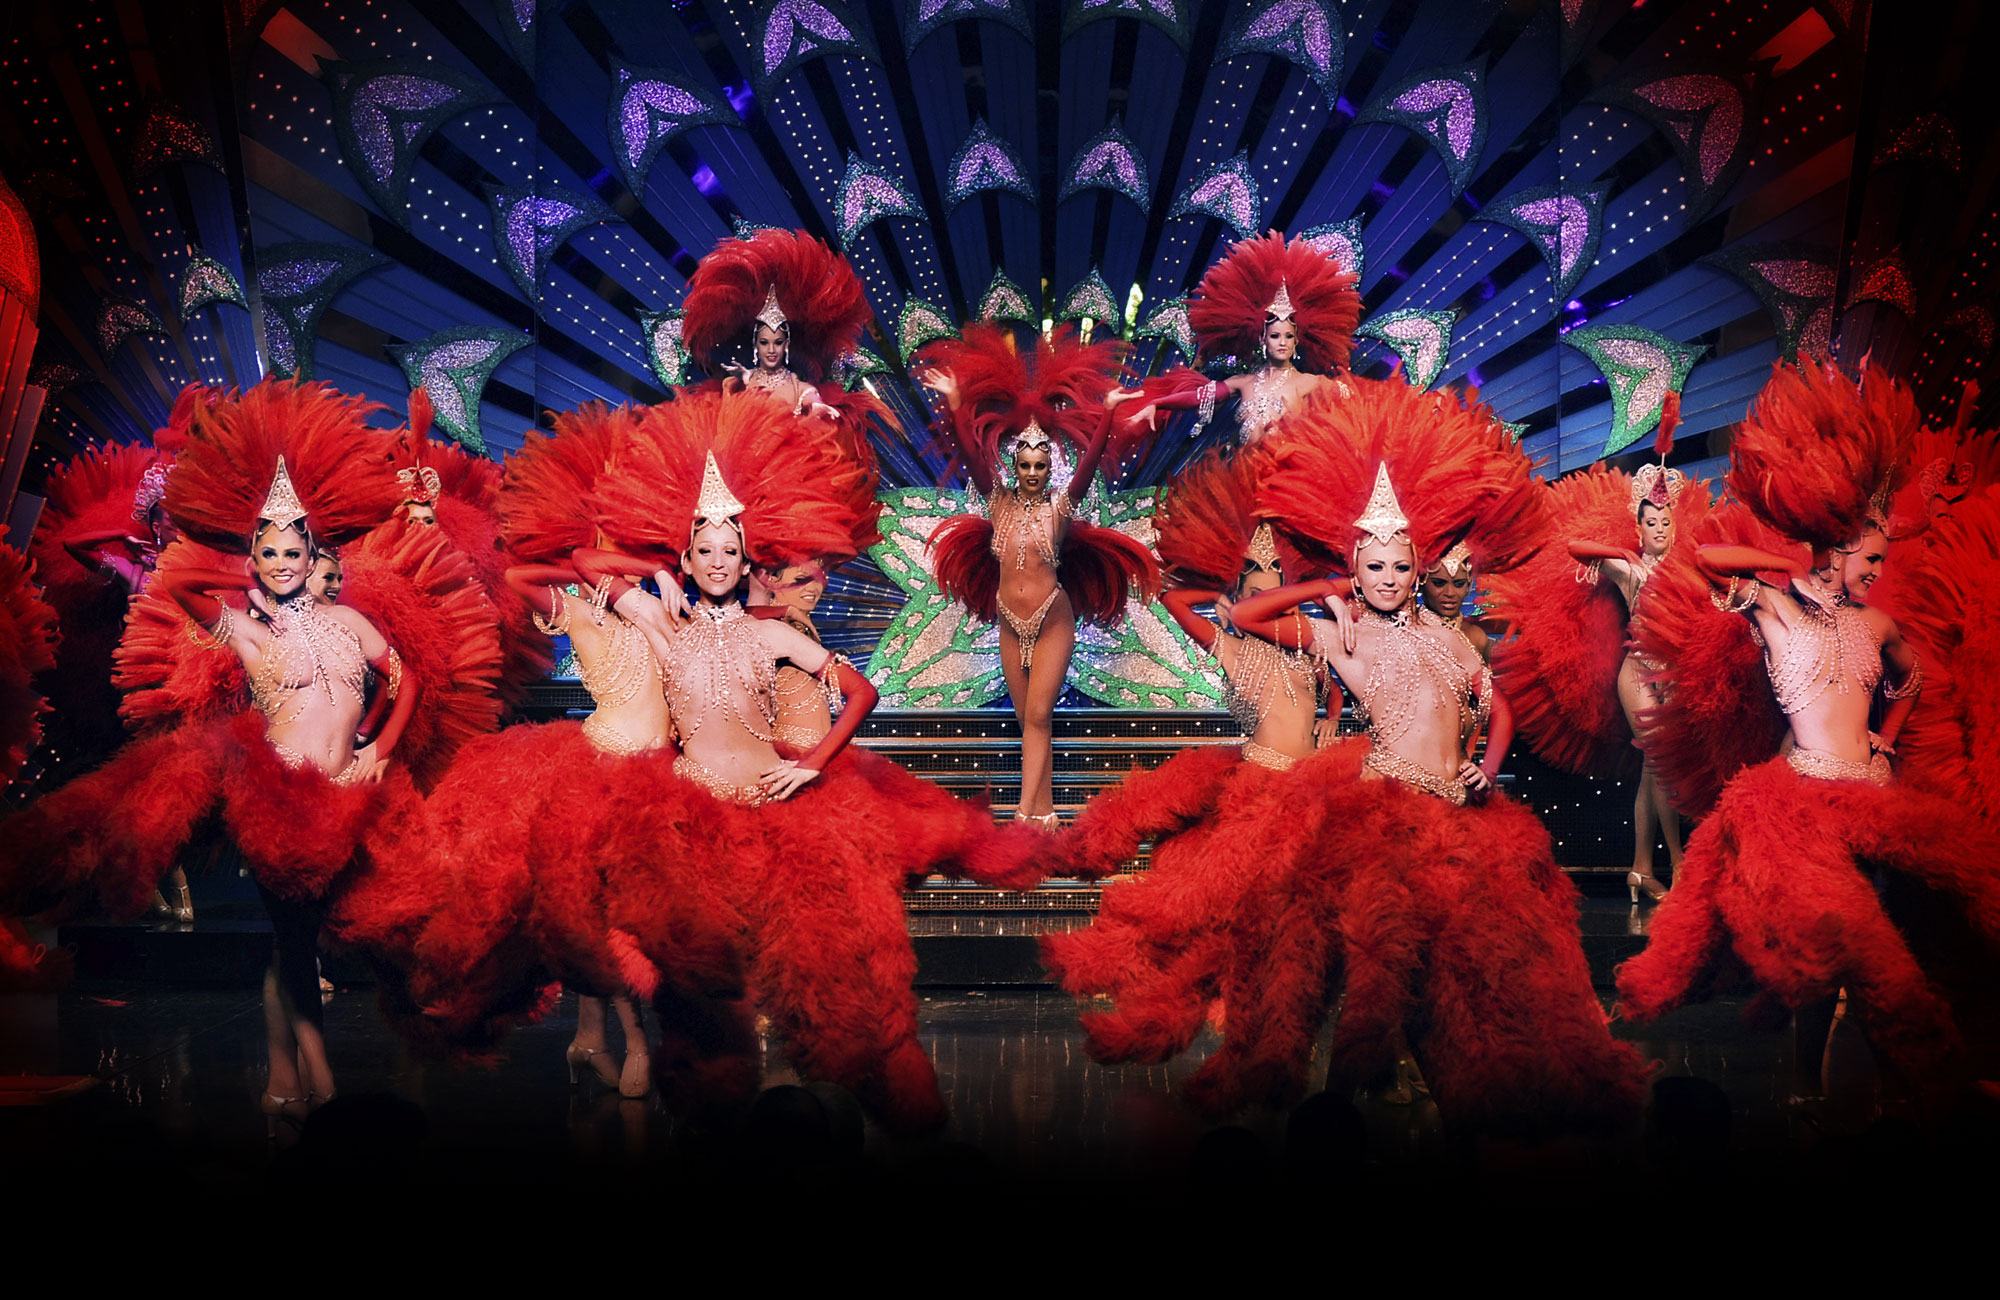 Amazing Moulin Rouge! Pictures & Backgrounds